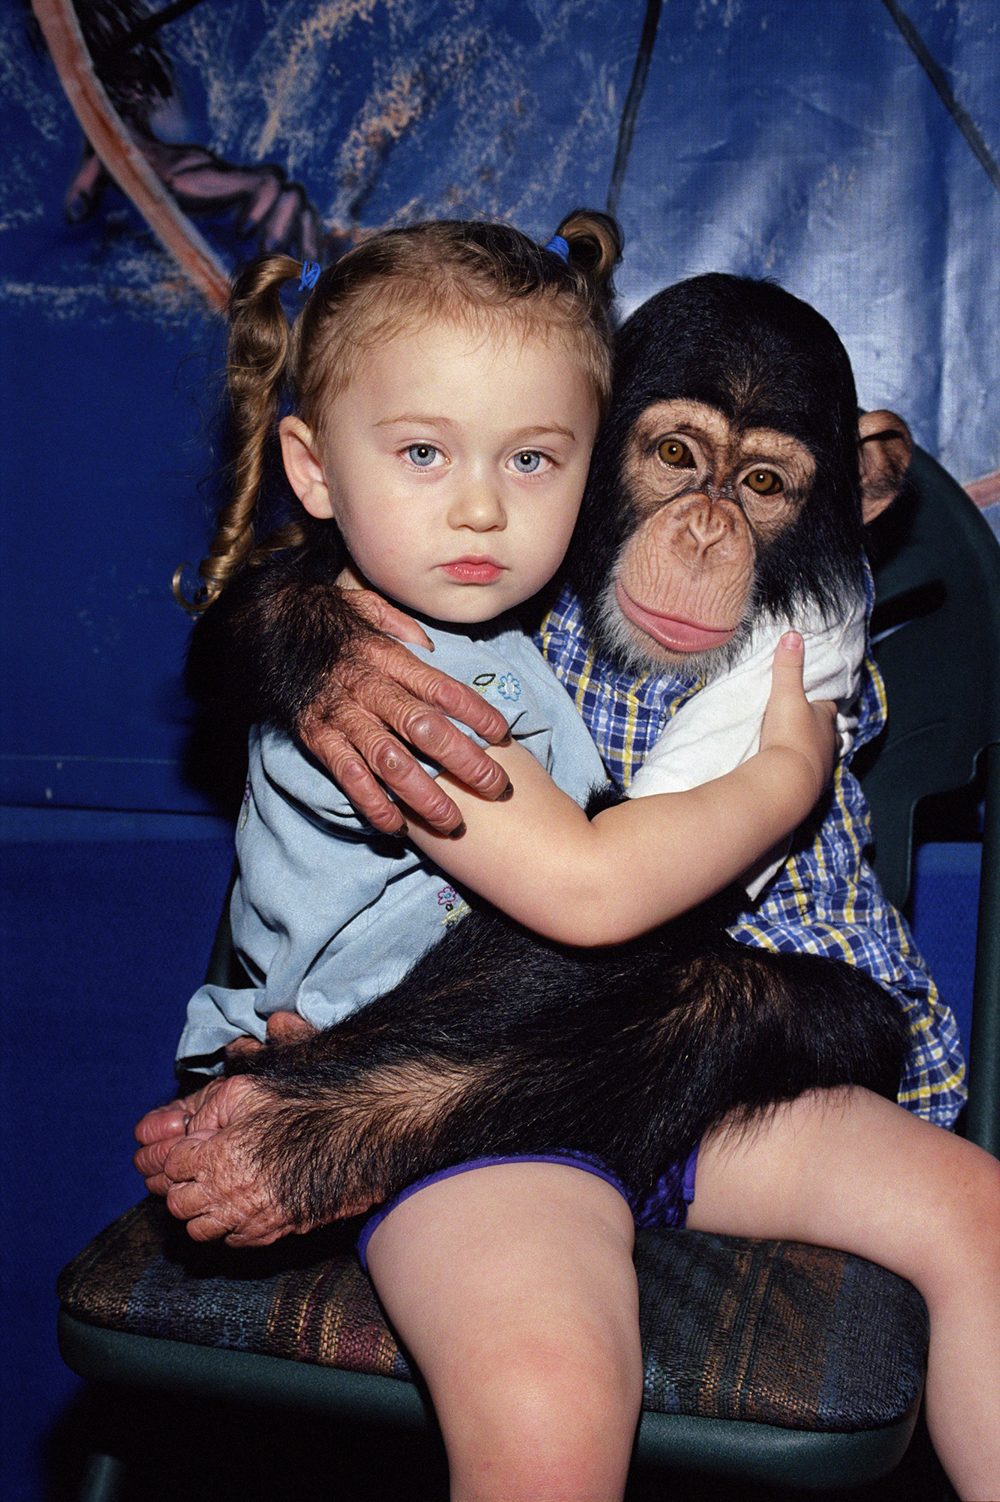 """Amelia and Ricky, 3 and 2 years old"", 2002, ©Robin Schwartz"